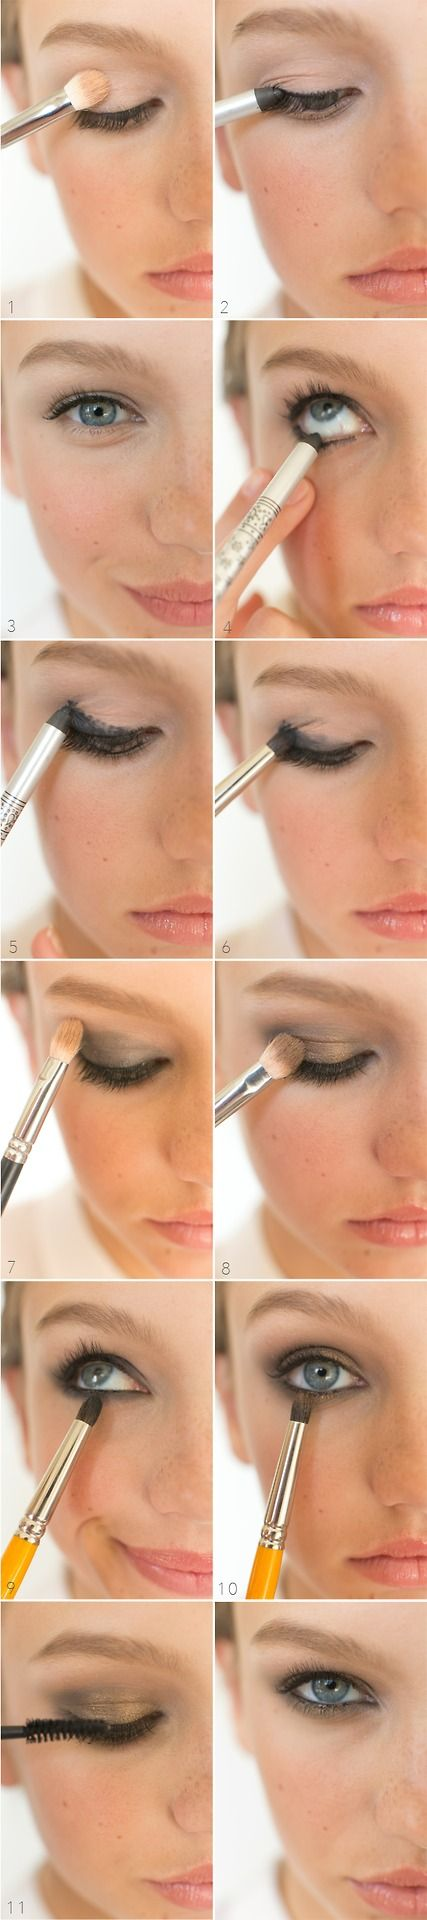 More makeup tutorials on http://pinmakeuptips.com/find-out-the-perfect-match/